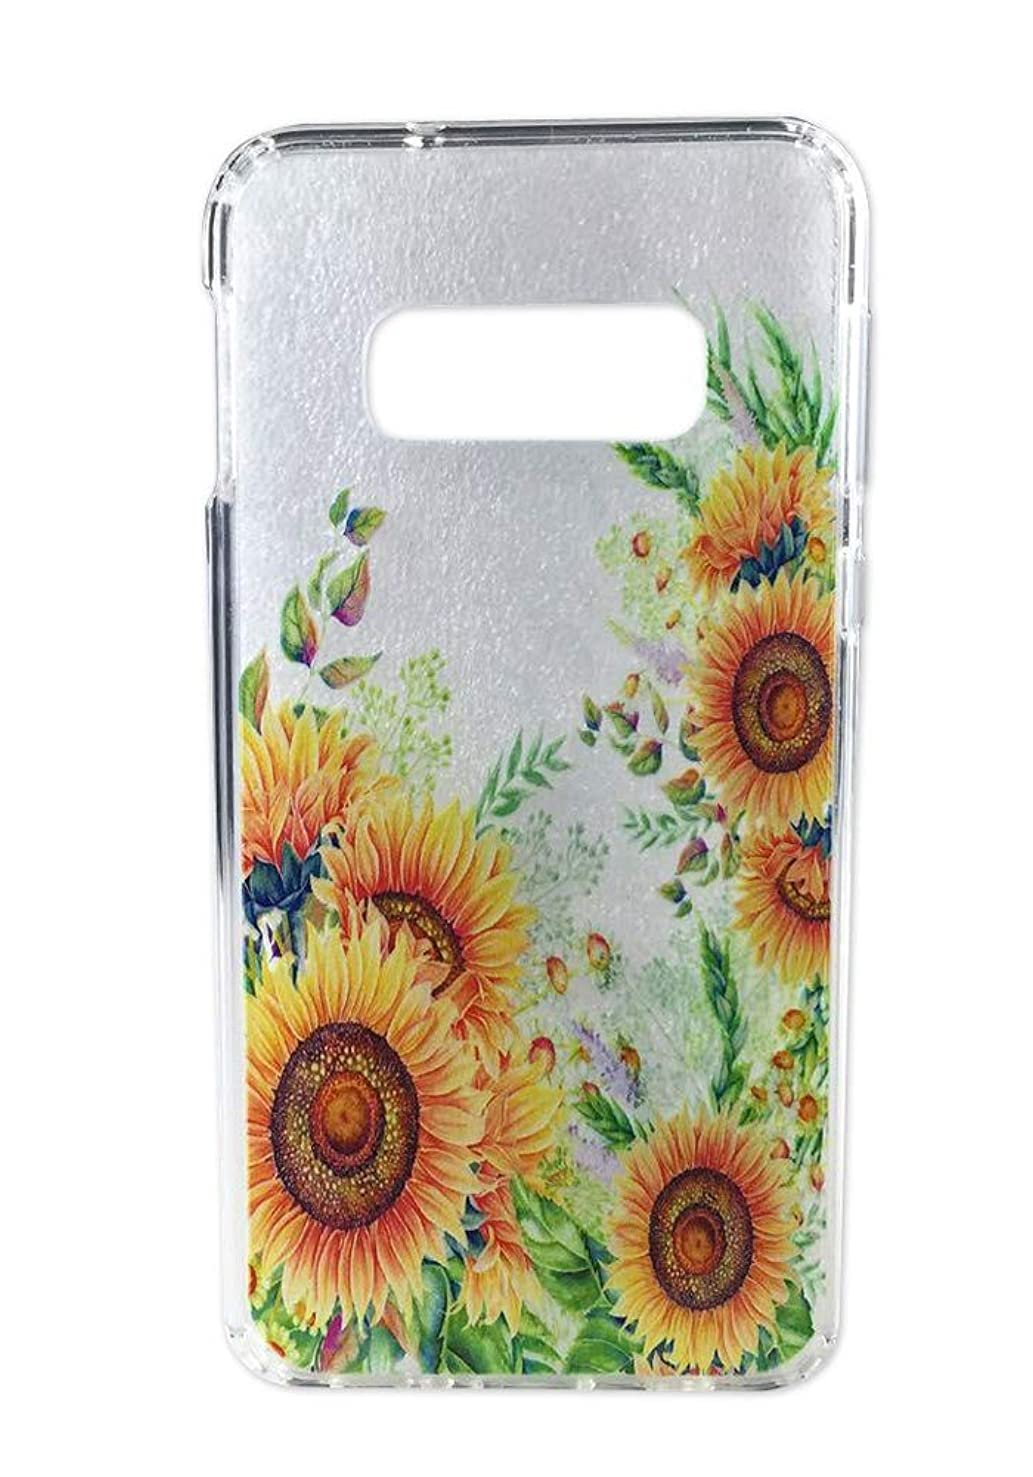 "Galaxy S10e Case, Ftonglogy Crystal Clear Anti-Scratch Shockproof Cover Plant Yellow Flowers Garden Printed Design Pattern TPU Bumper Case for Samsung Galaxy S10e (5.8""), Sunflower"